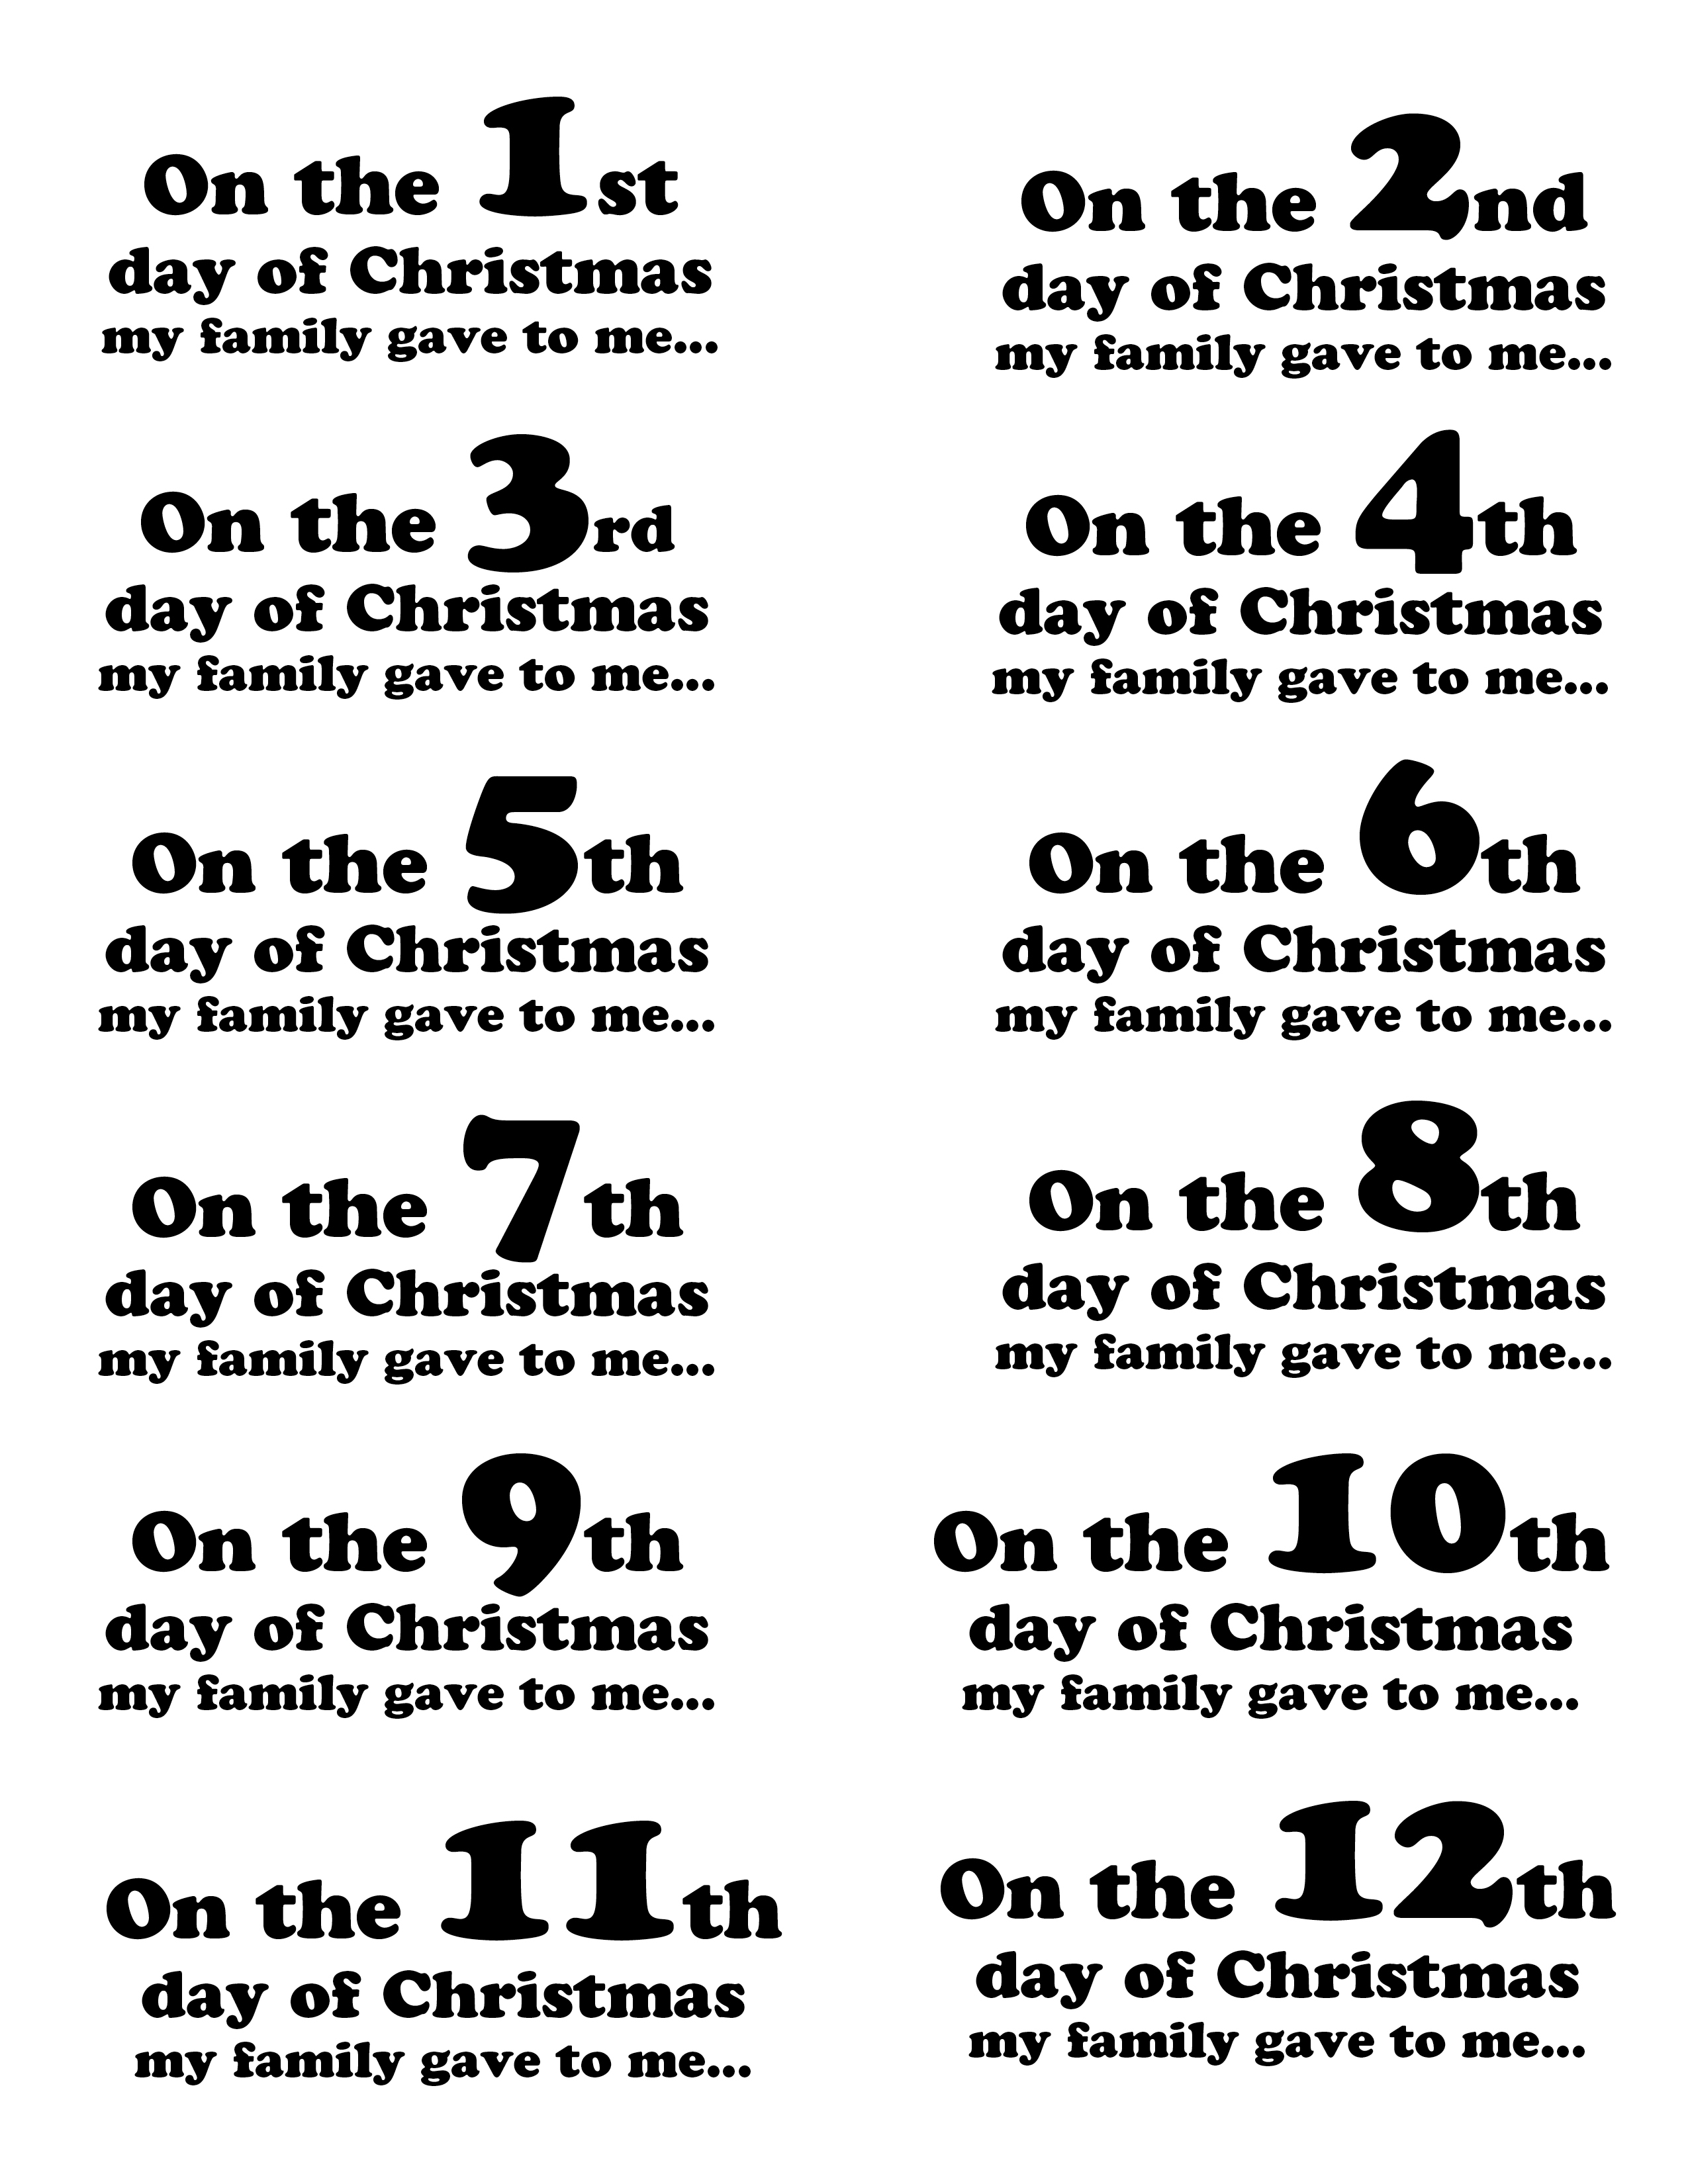 Create The 12 Days Of Christmas For Your Family - Marcie Lyons